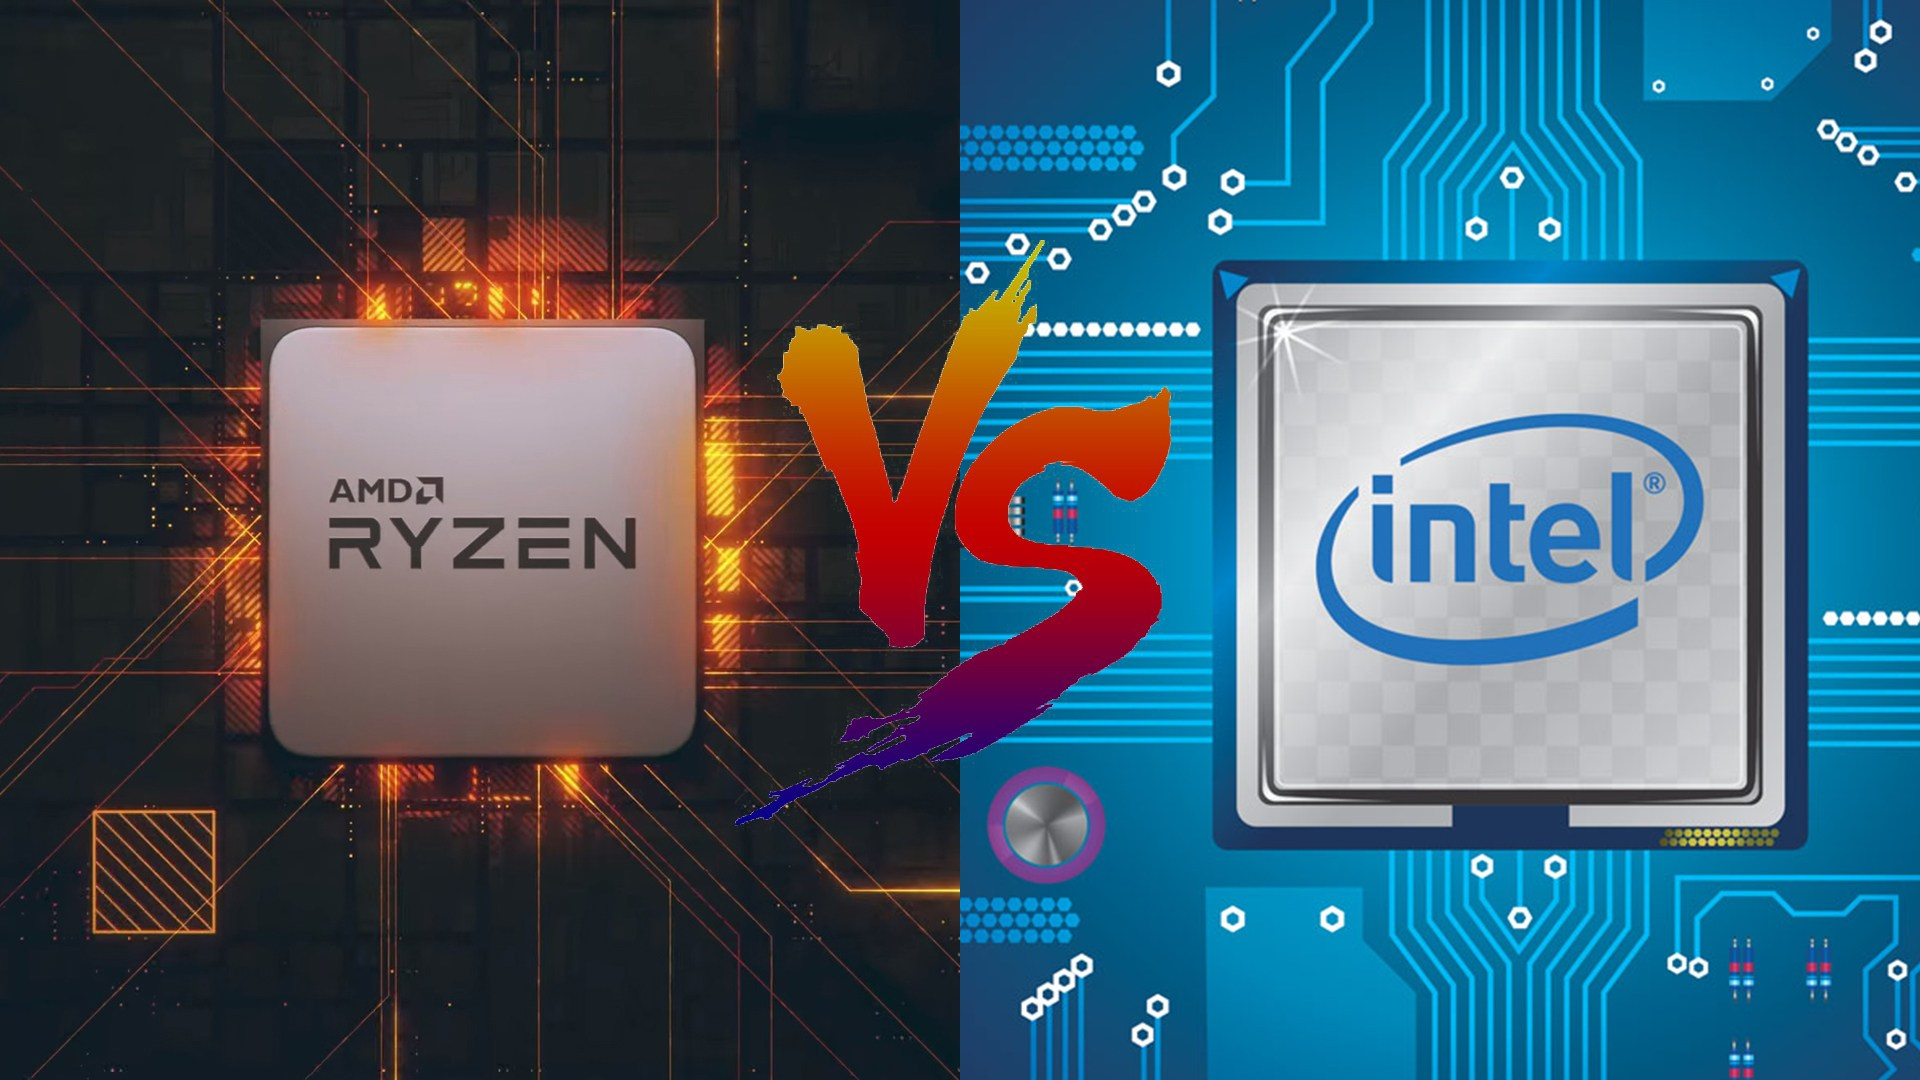 [Comparison] AMD Ryzen 7 4700U vs Intel Core i7-1065G7 – AMD wins another battle in the war with more than 30% advantage